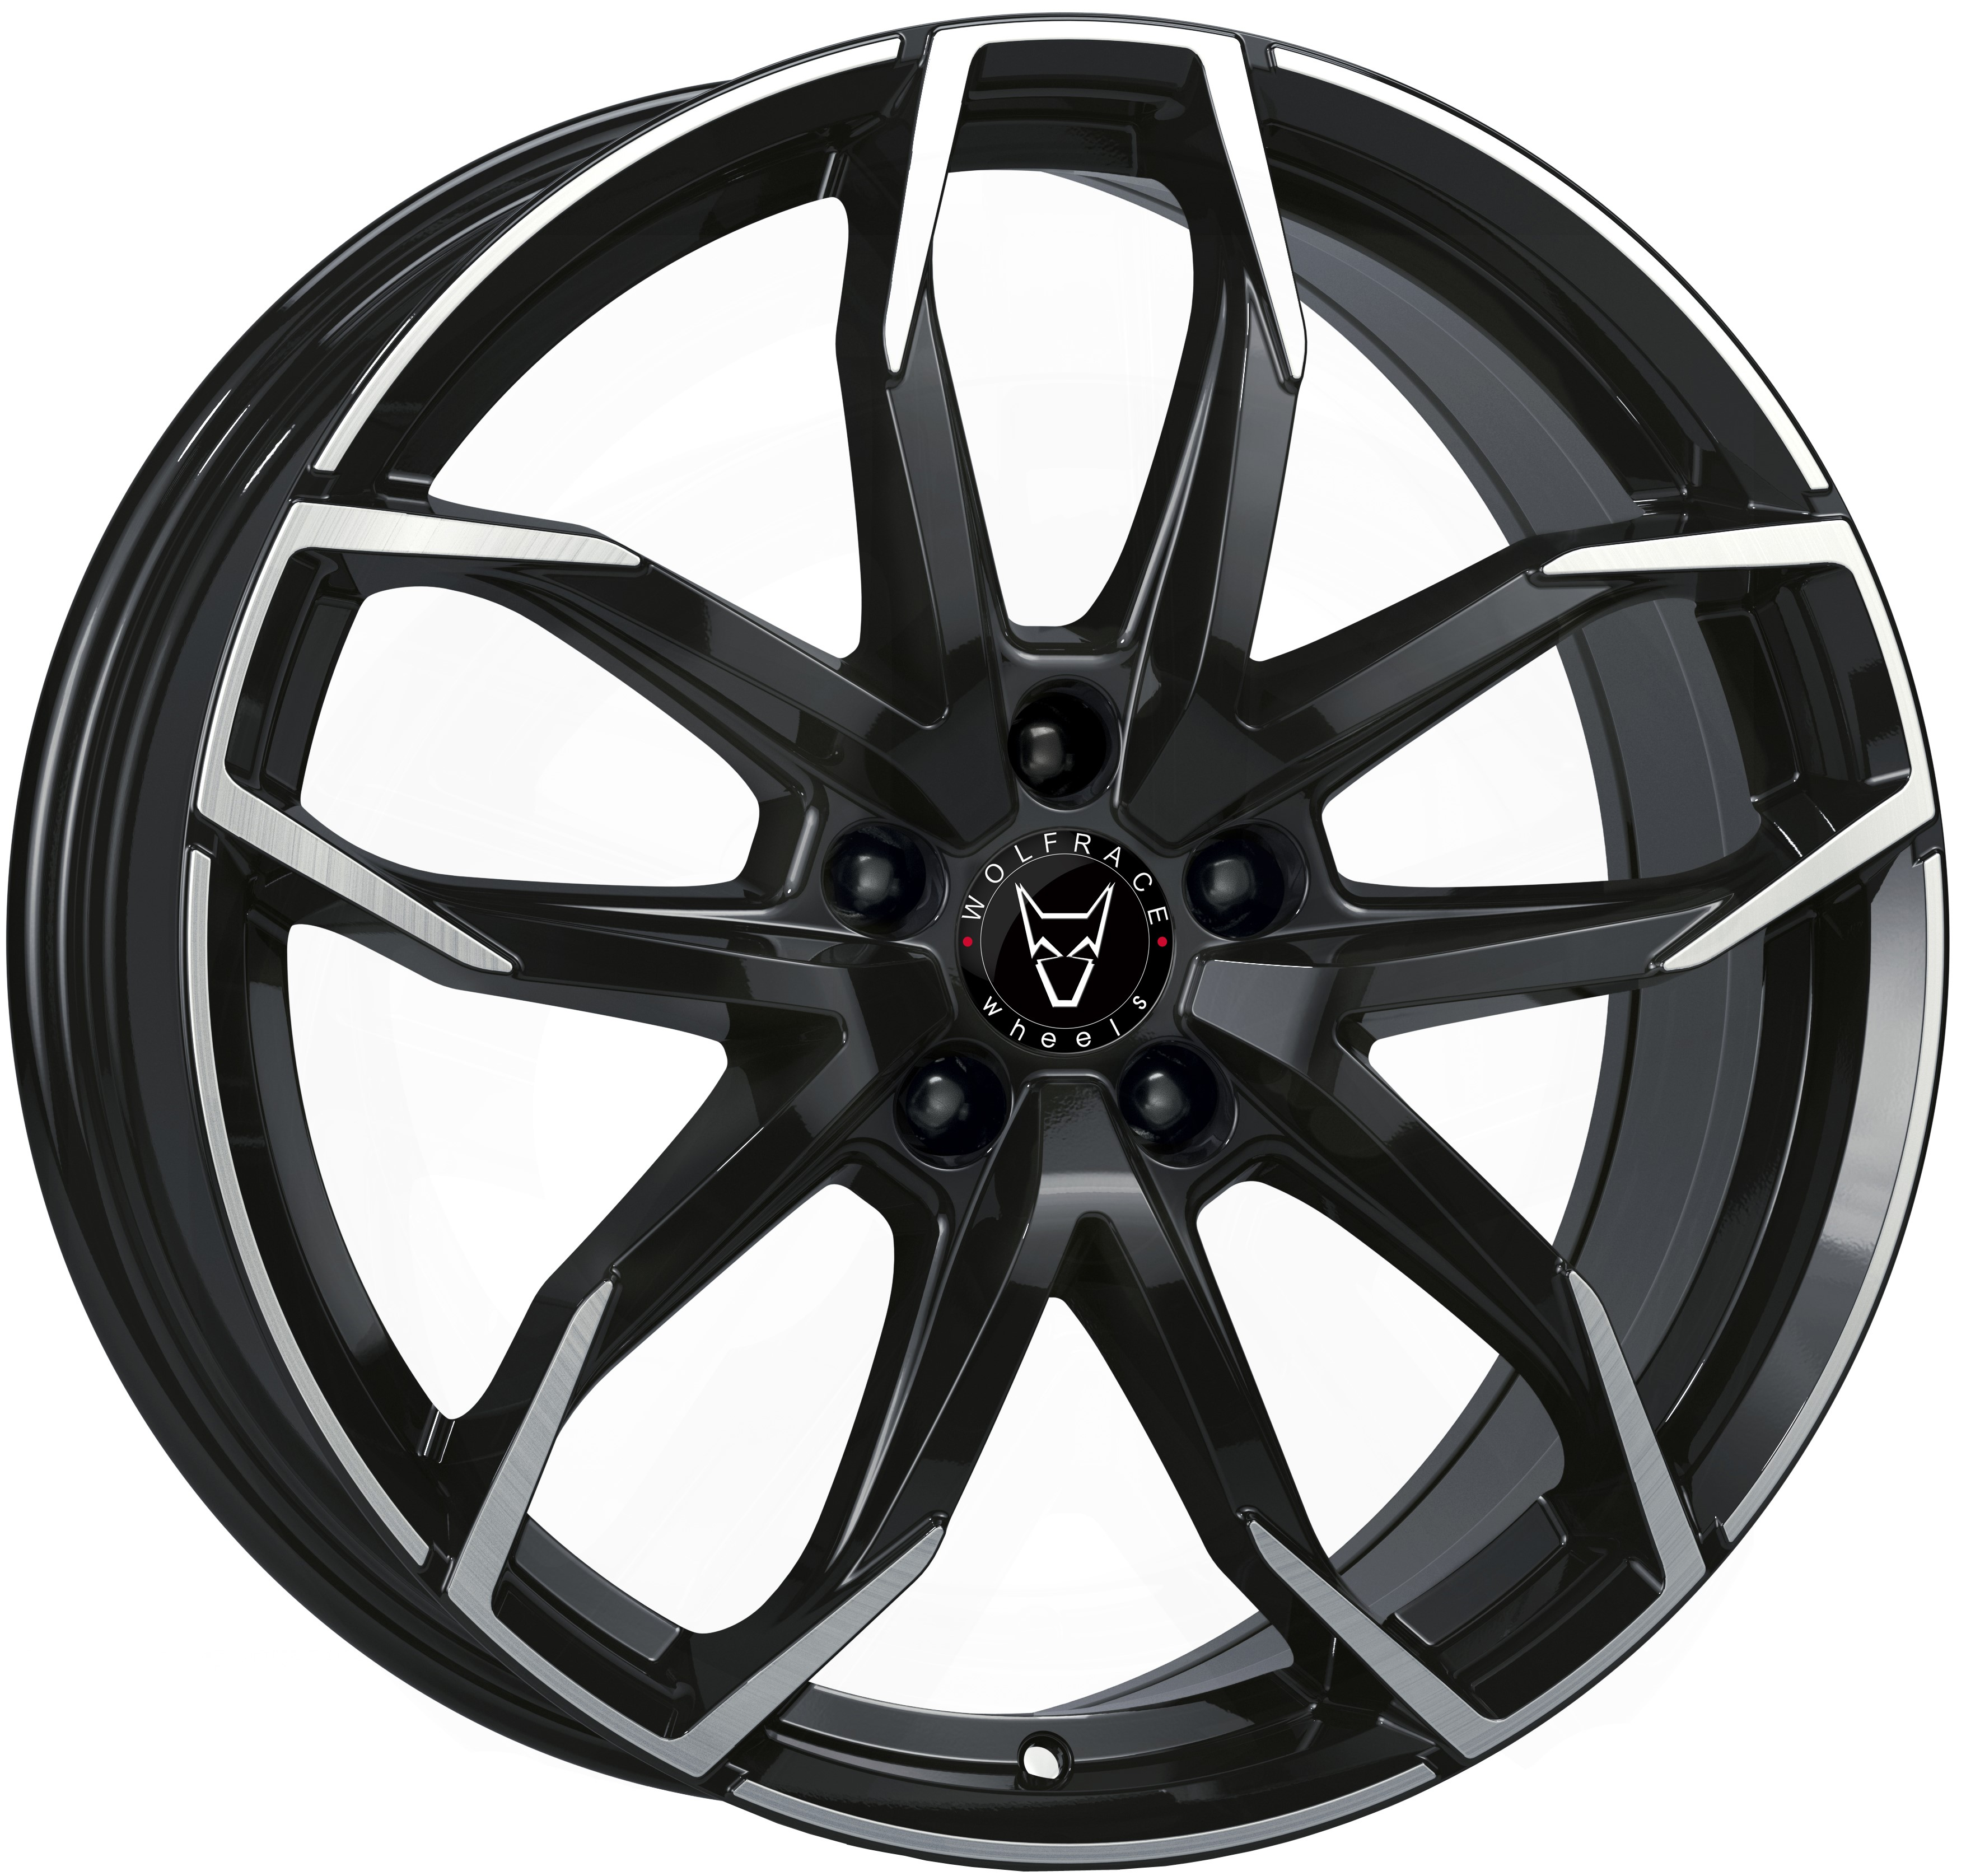 Wolfrace GB Lucca Gloss Black / Polished